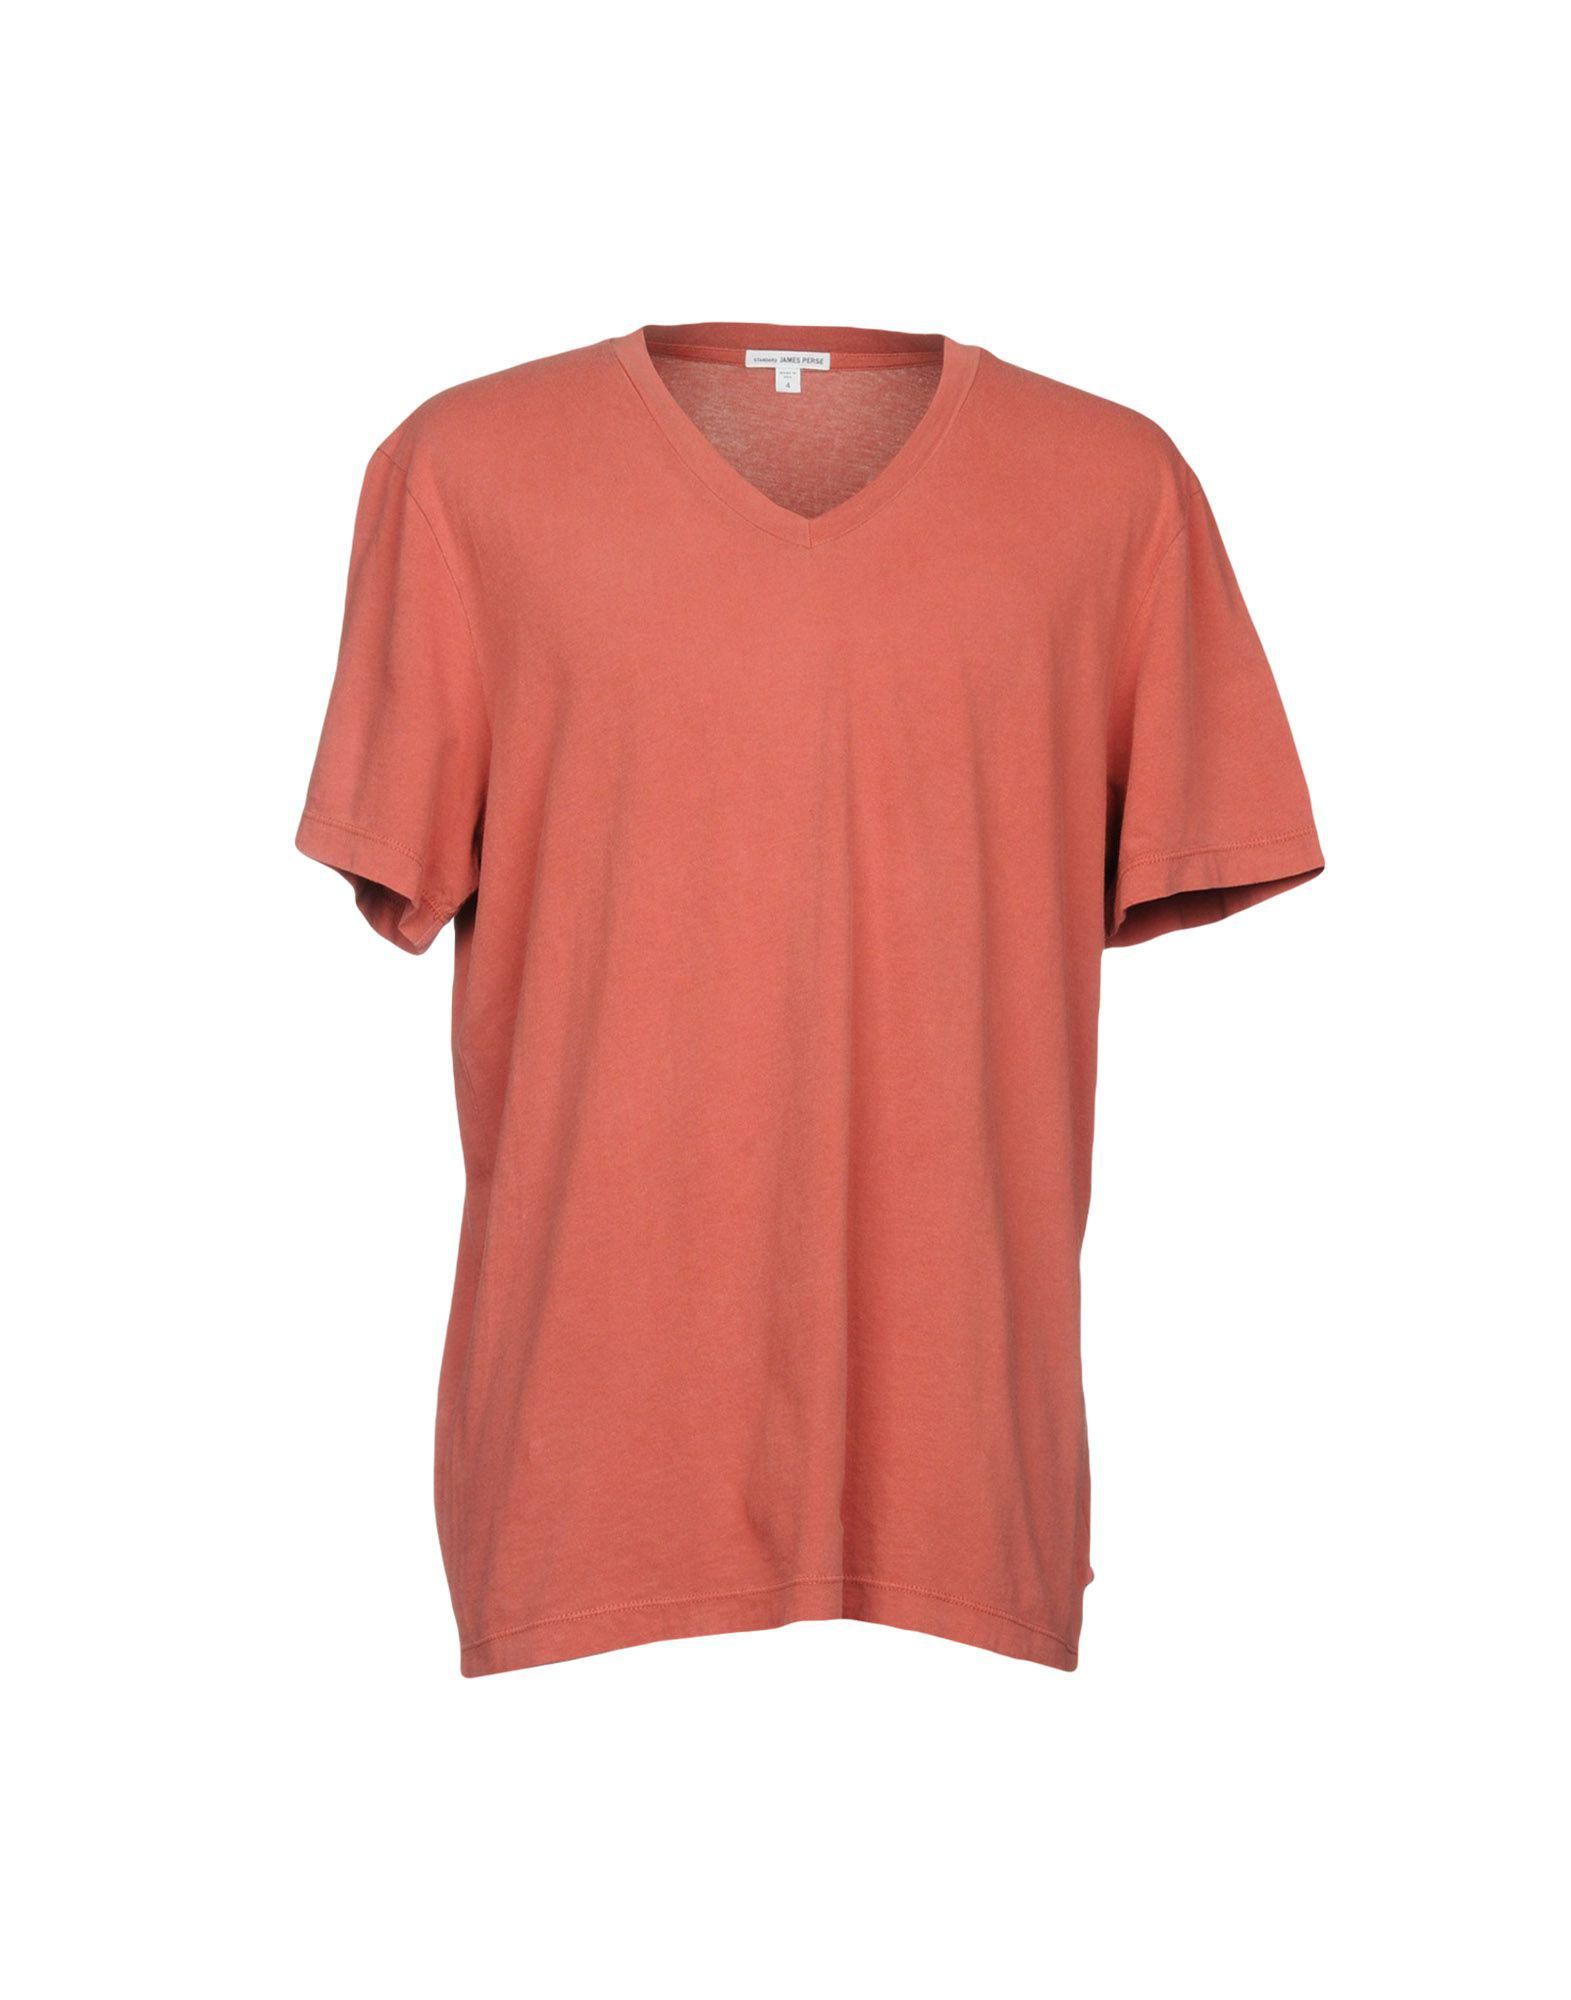 Lyst james perse t shirts in red for men for James perse t shirts sale